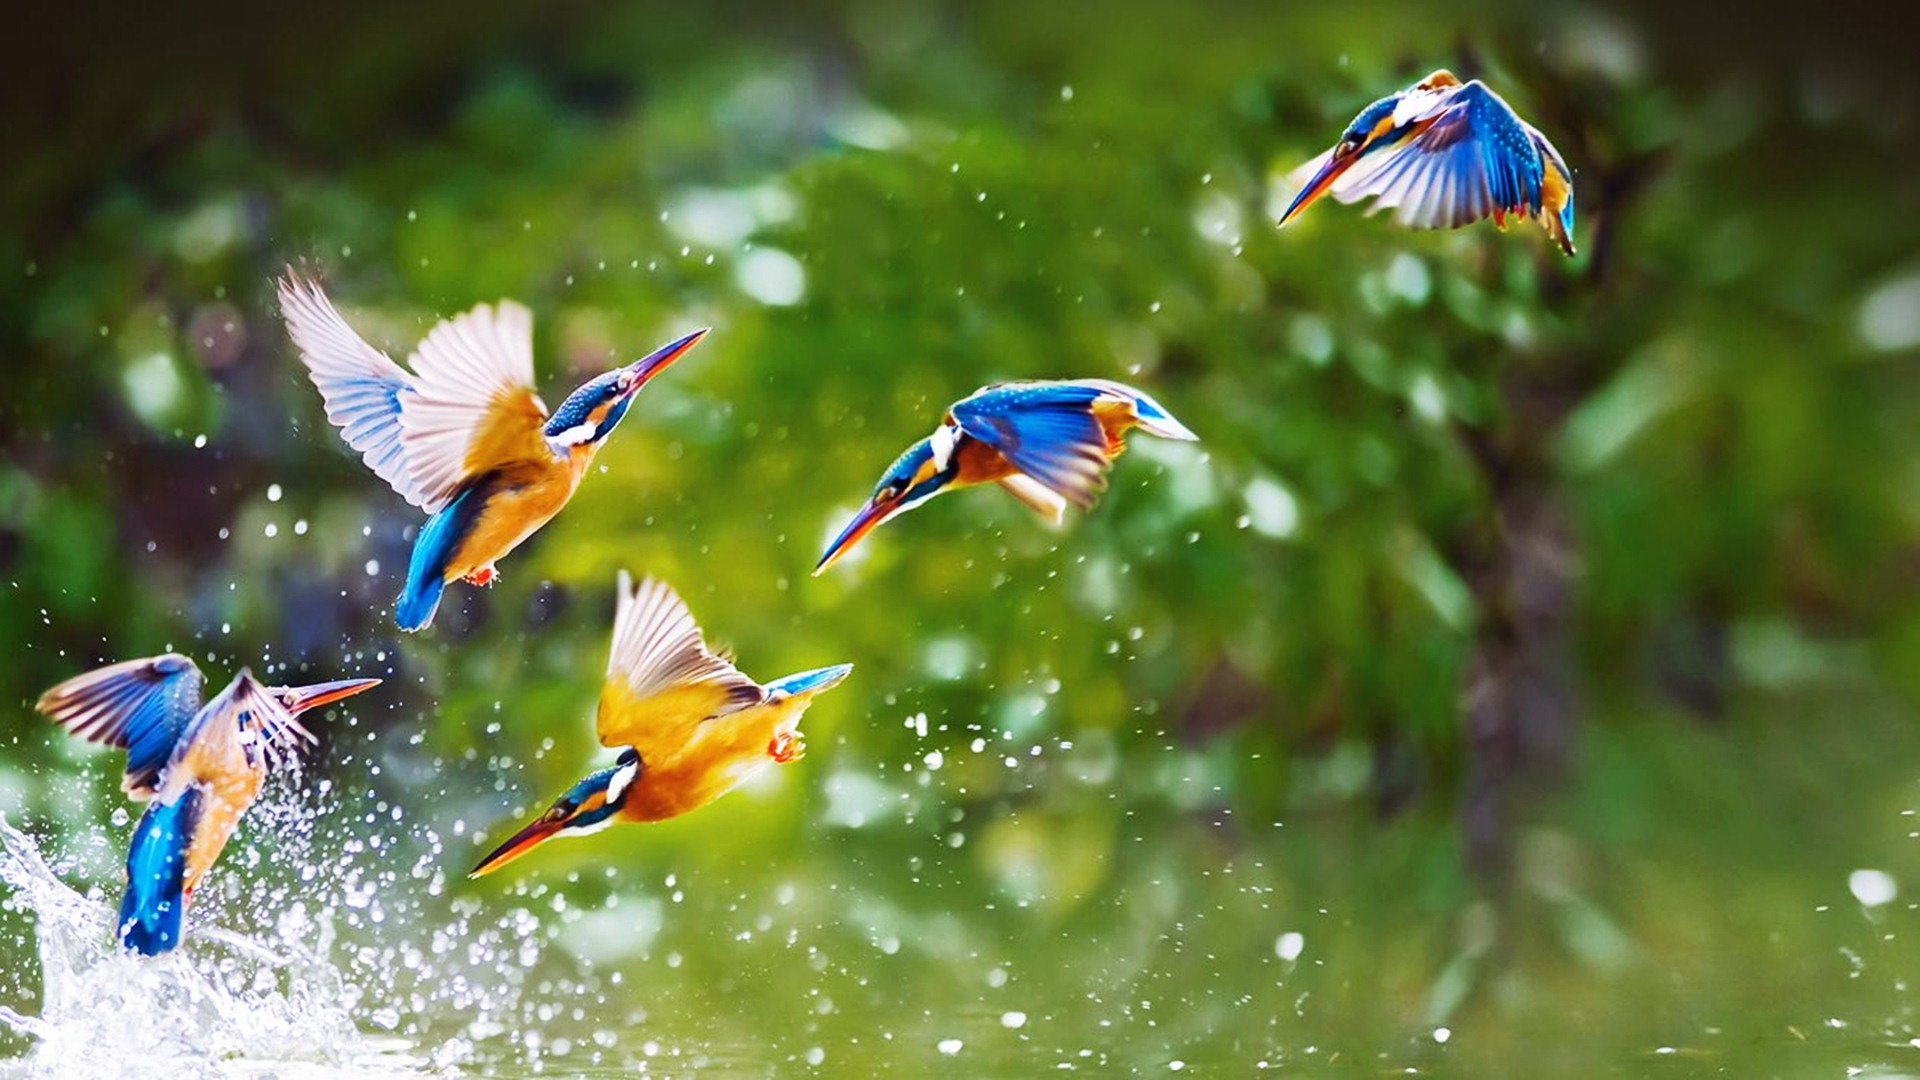 Amazing-birds-pictures-download-from-https-hqtpictures-wordpress-com-wallpaper-wpc5807